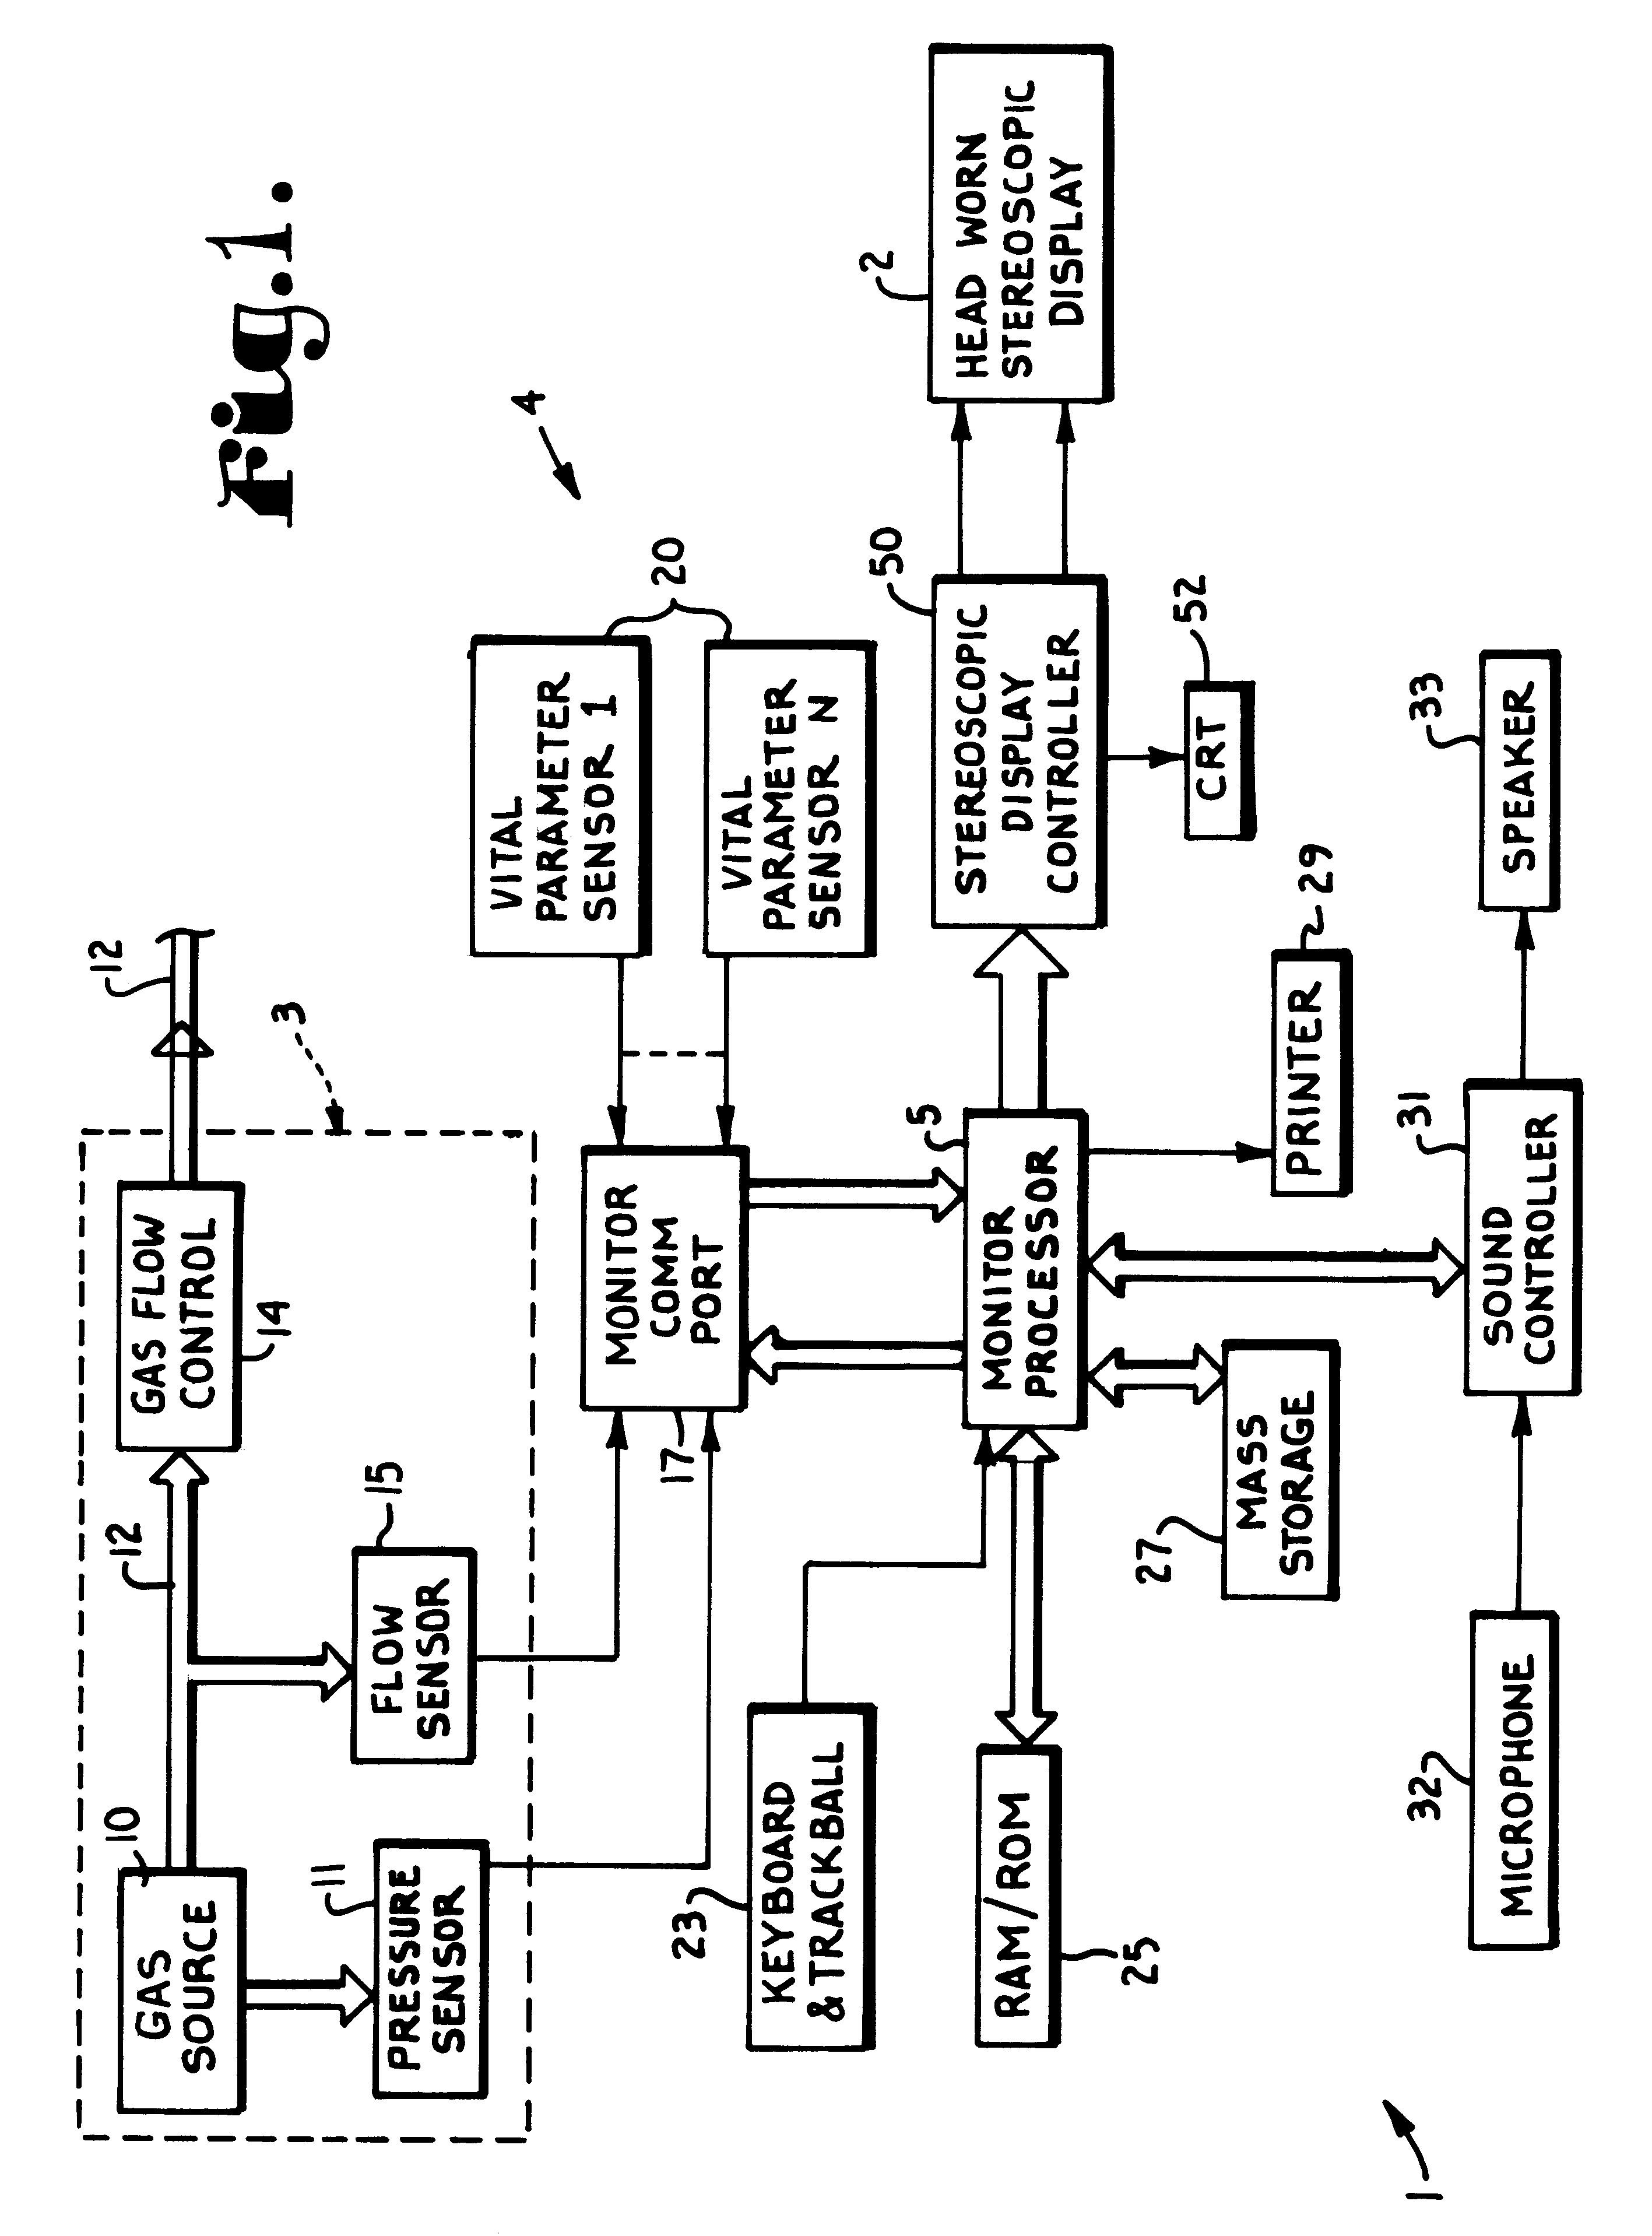 draw the block diagram of computer rheem ac capacitor wiring patent us6415792 anesthesia machine with head worn